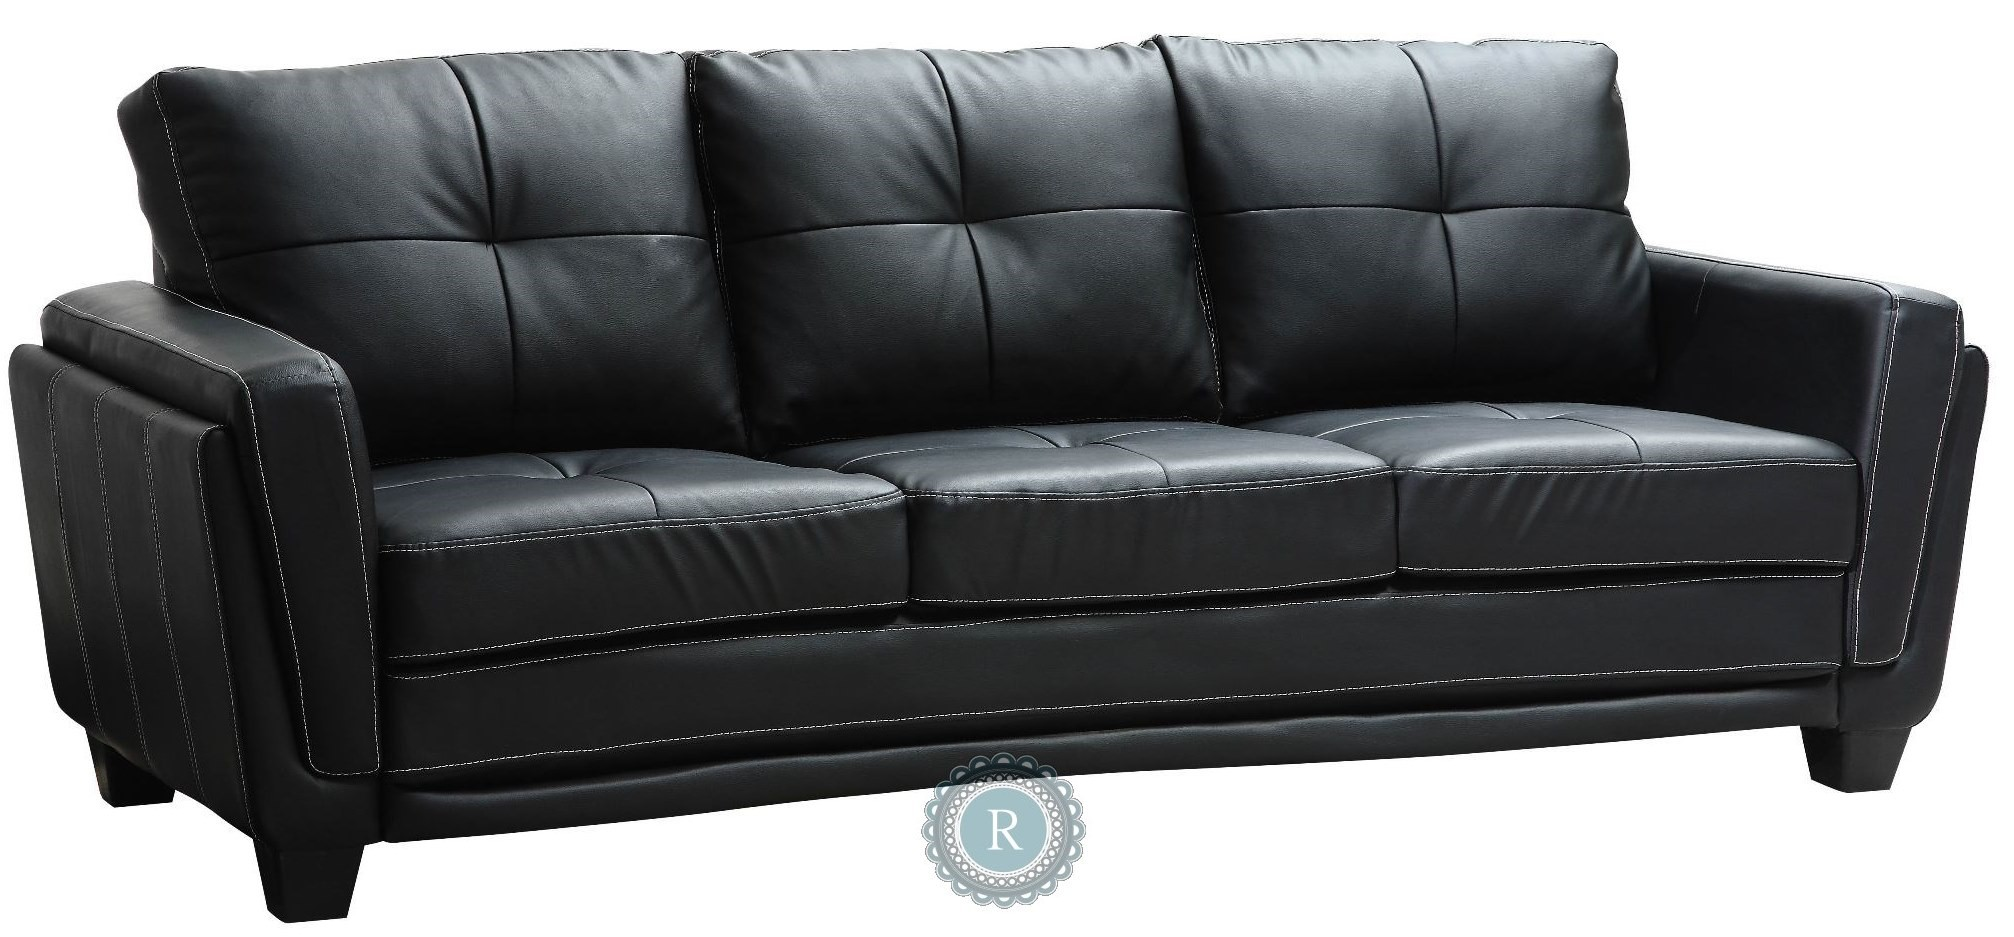 Dwyer Sofa From Homelegance 9701blk 3 Coleman Furniture